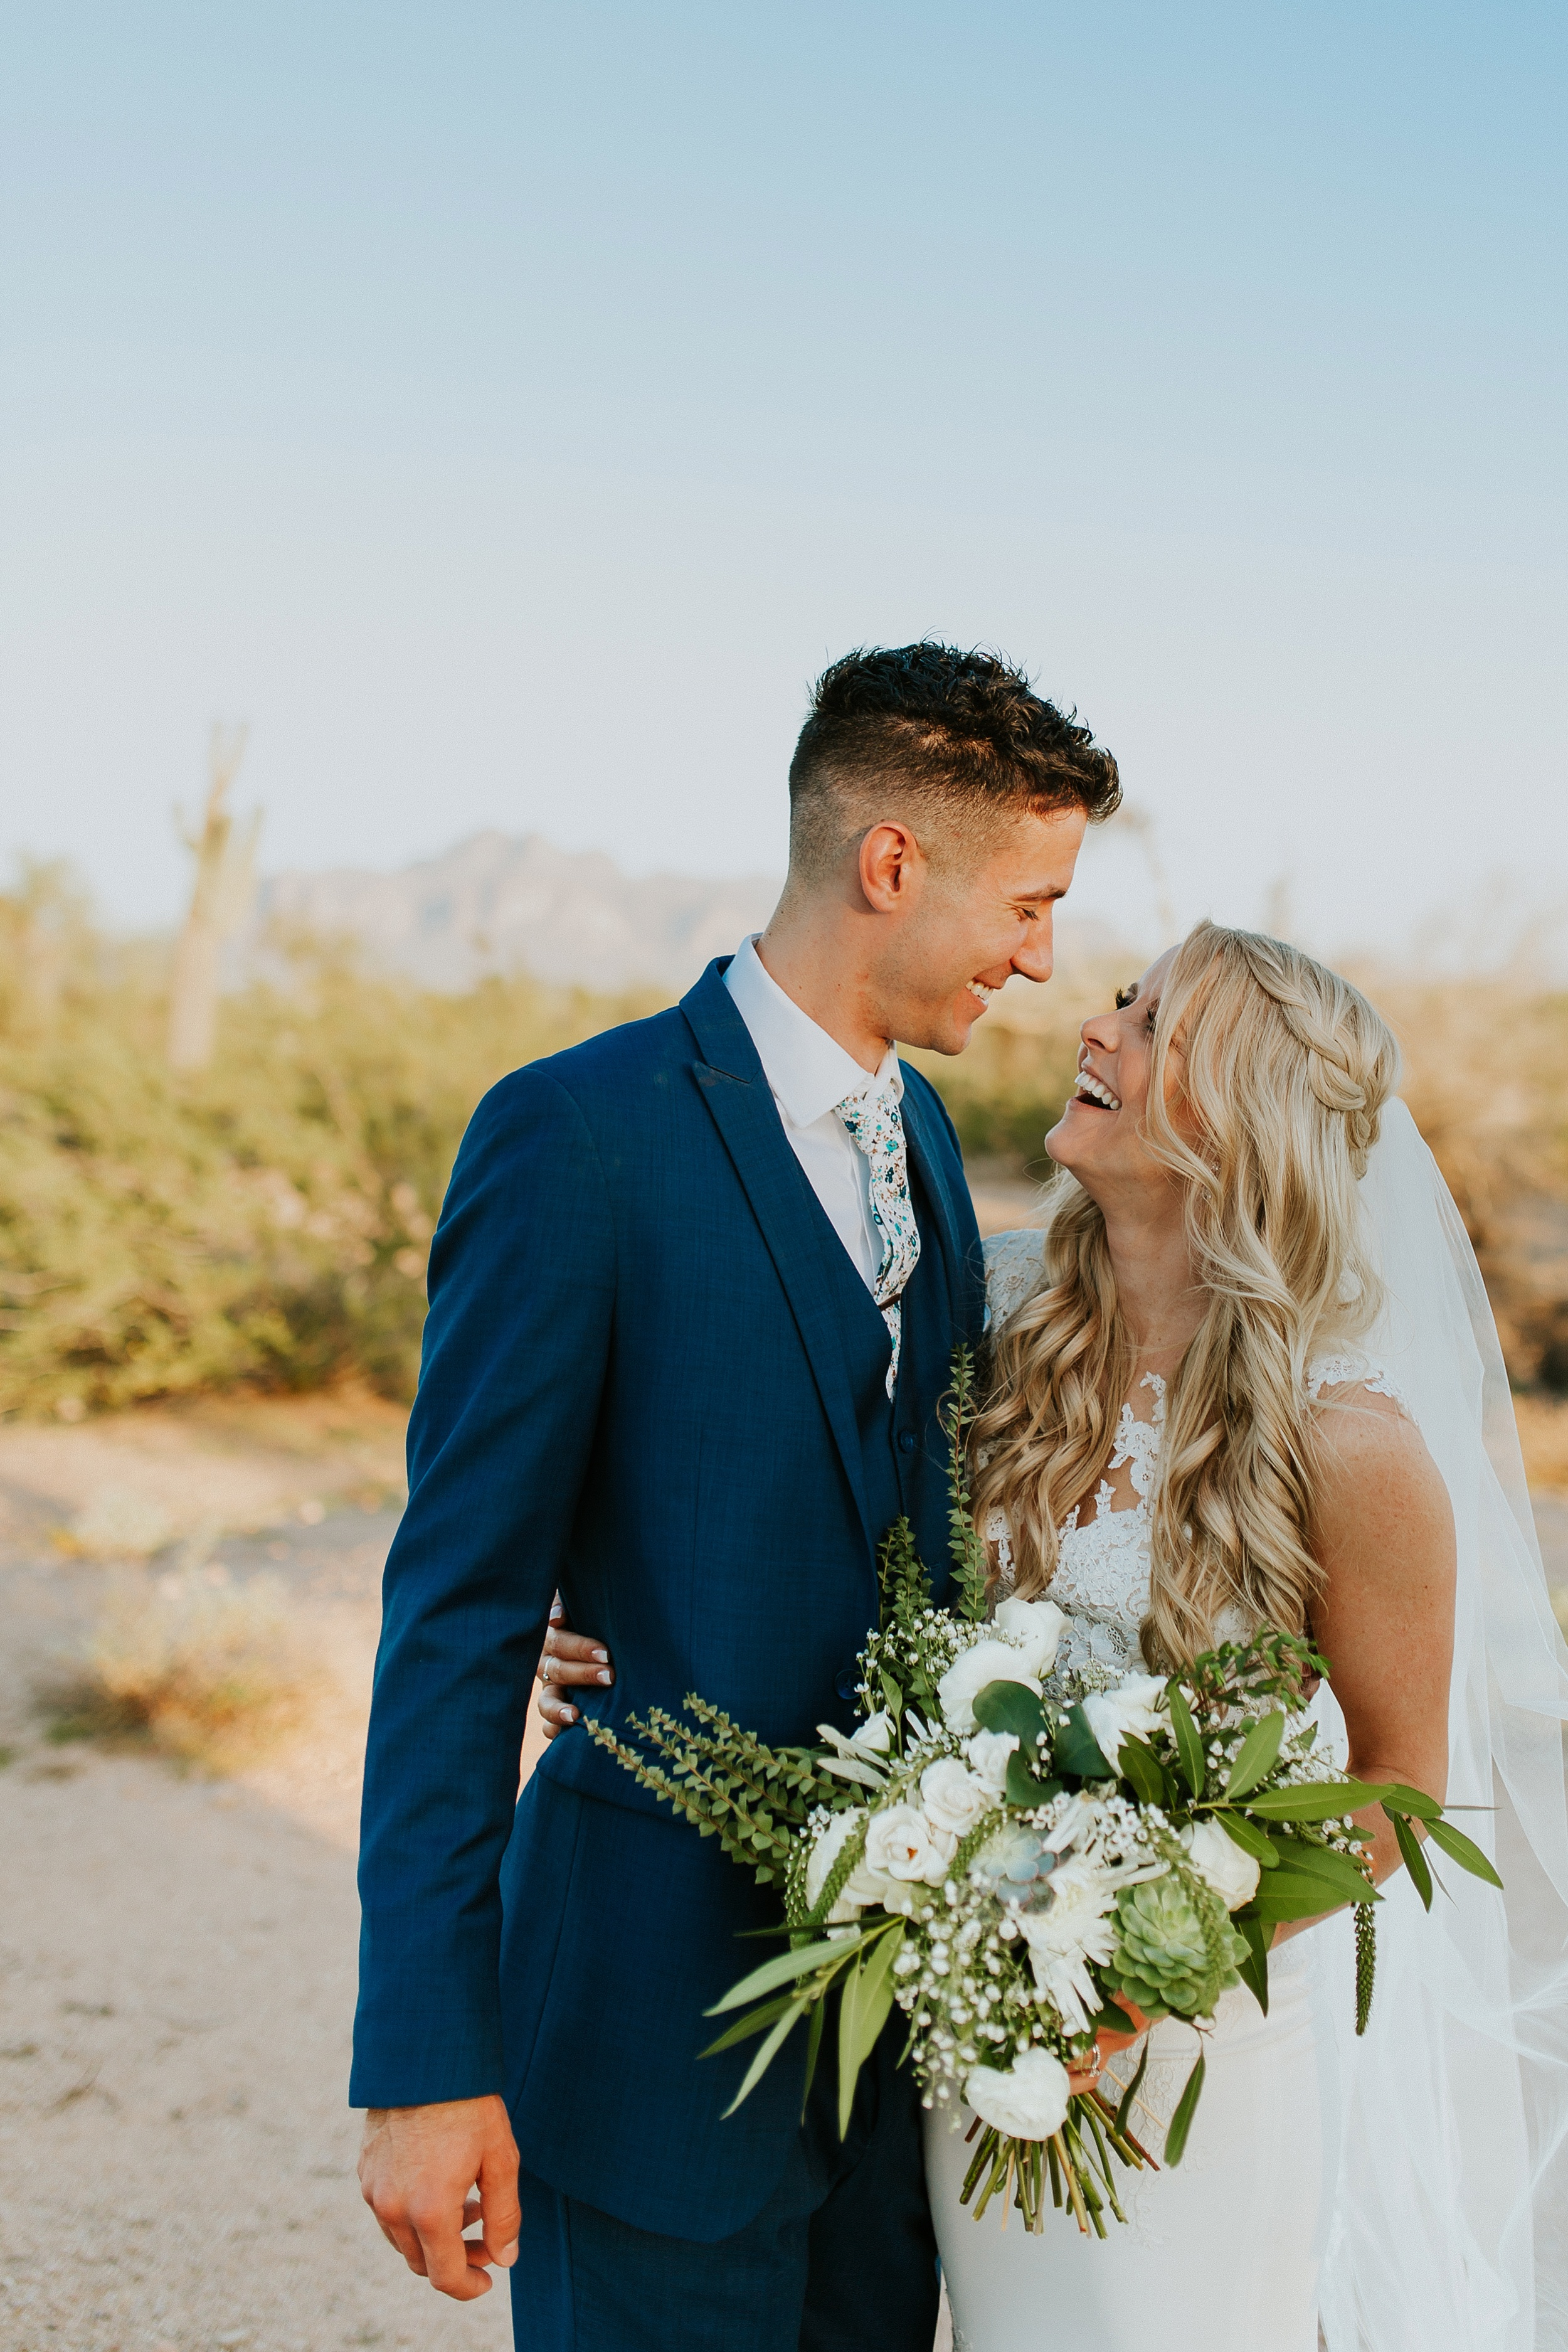 Meg+Bubba_Wedding_Bride+Groom_Portraits_Arizona-76.jpg